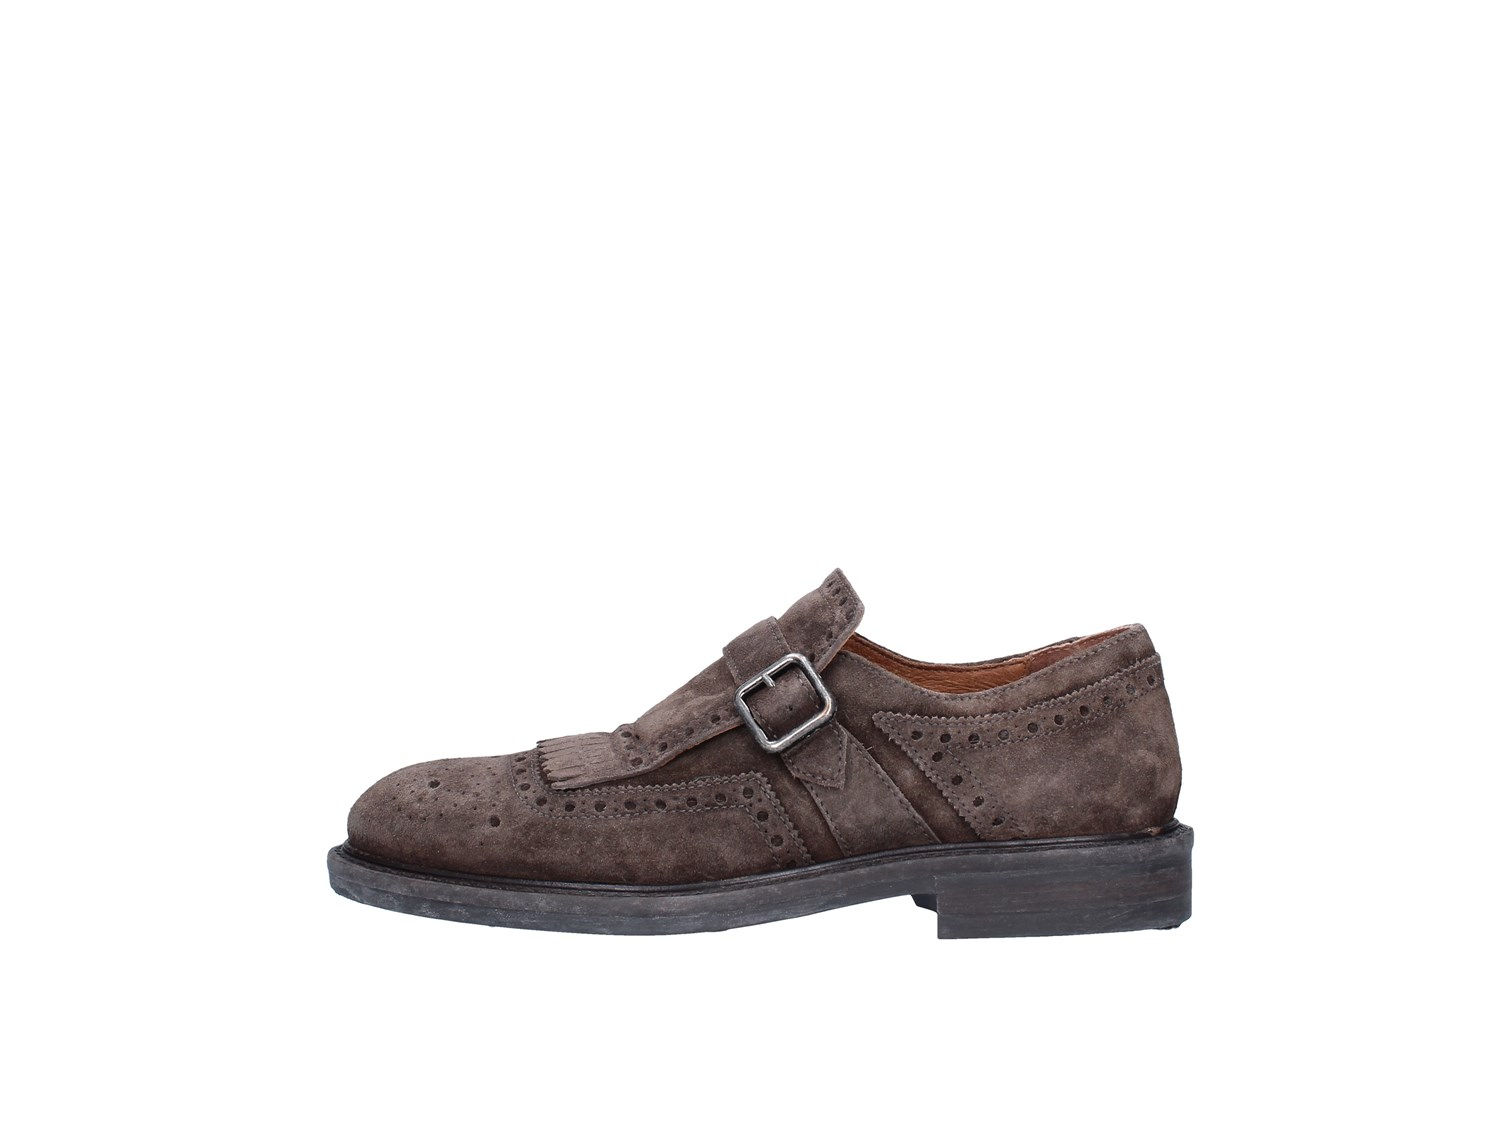 Frau 73h4 Mud Shoes Man Francesina